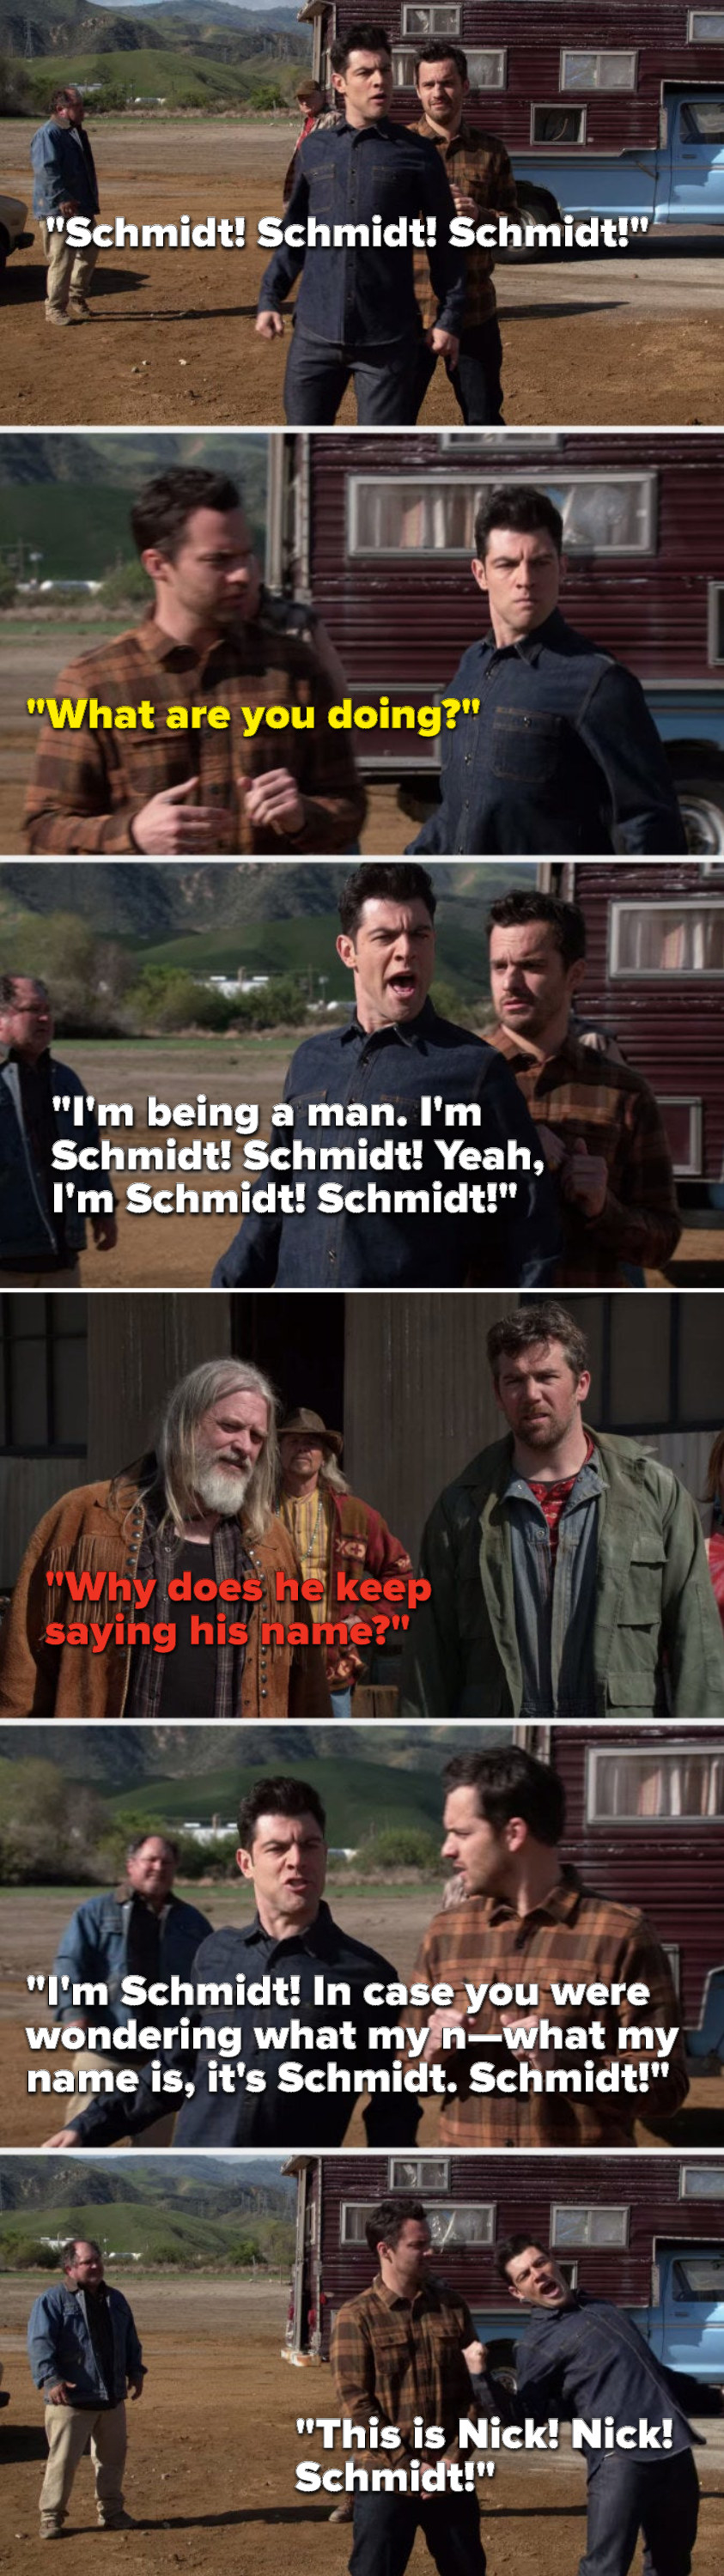 """Schmidt says, """"Schmidt, Schmidt, Schmidt,"""" Nick says, """"What are you doing,"""" Schmidt says, """"I'm being a man, I'm Schmidt, Schmidt, Yeah, I'm Schmidt, in case you were wondering what my name is, it's Schmidt, Schmidt, this is Nick, Nick, Schmidt"""""""